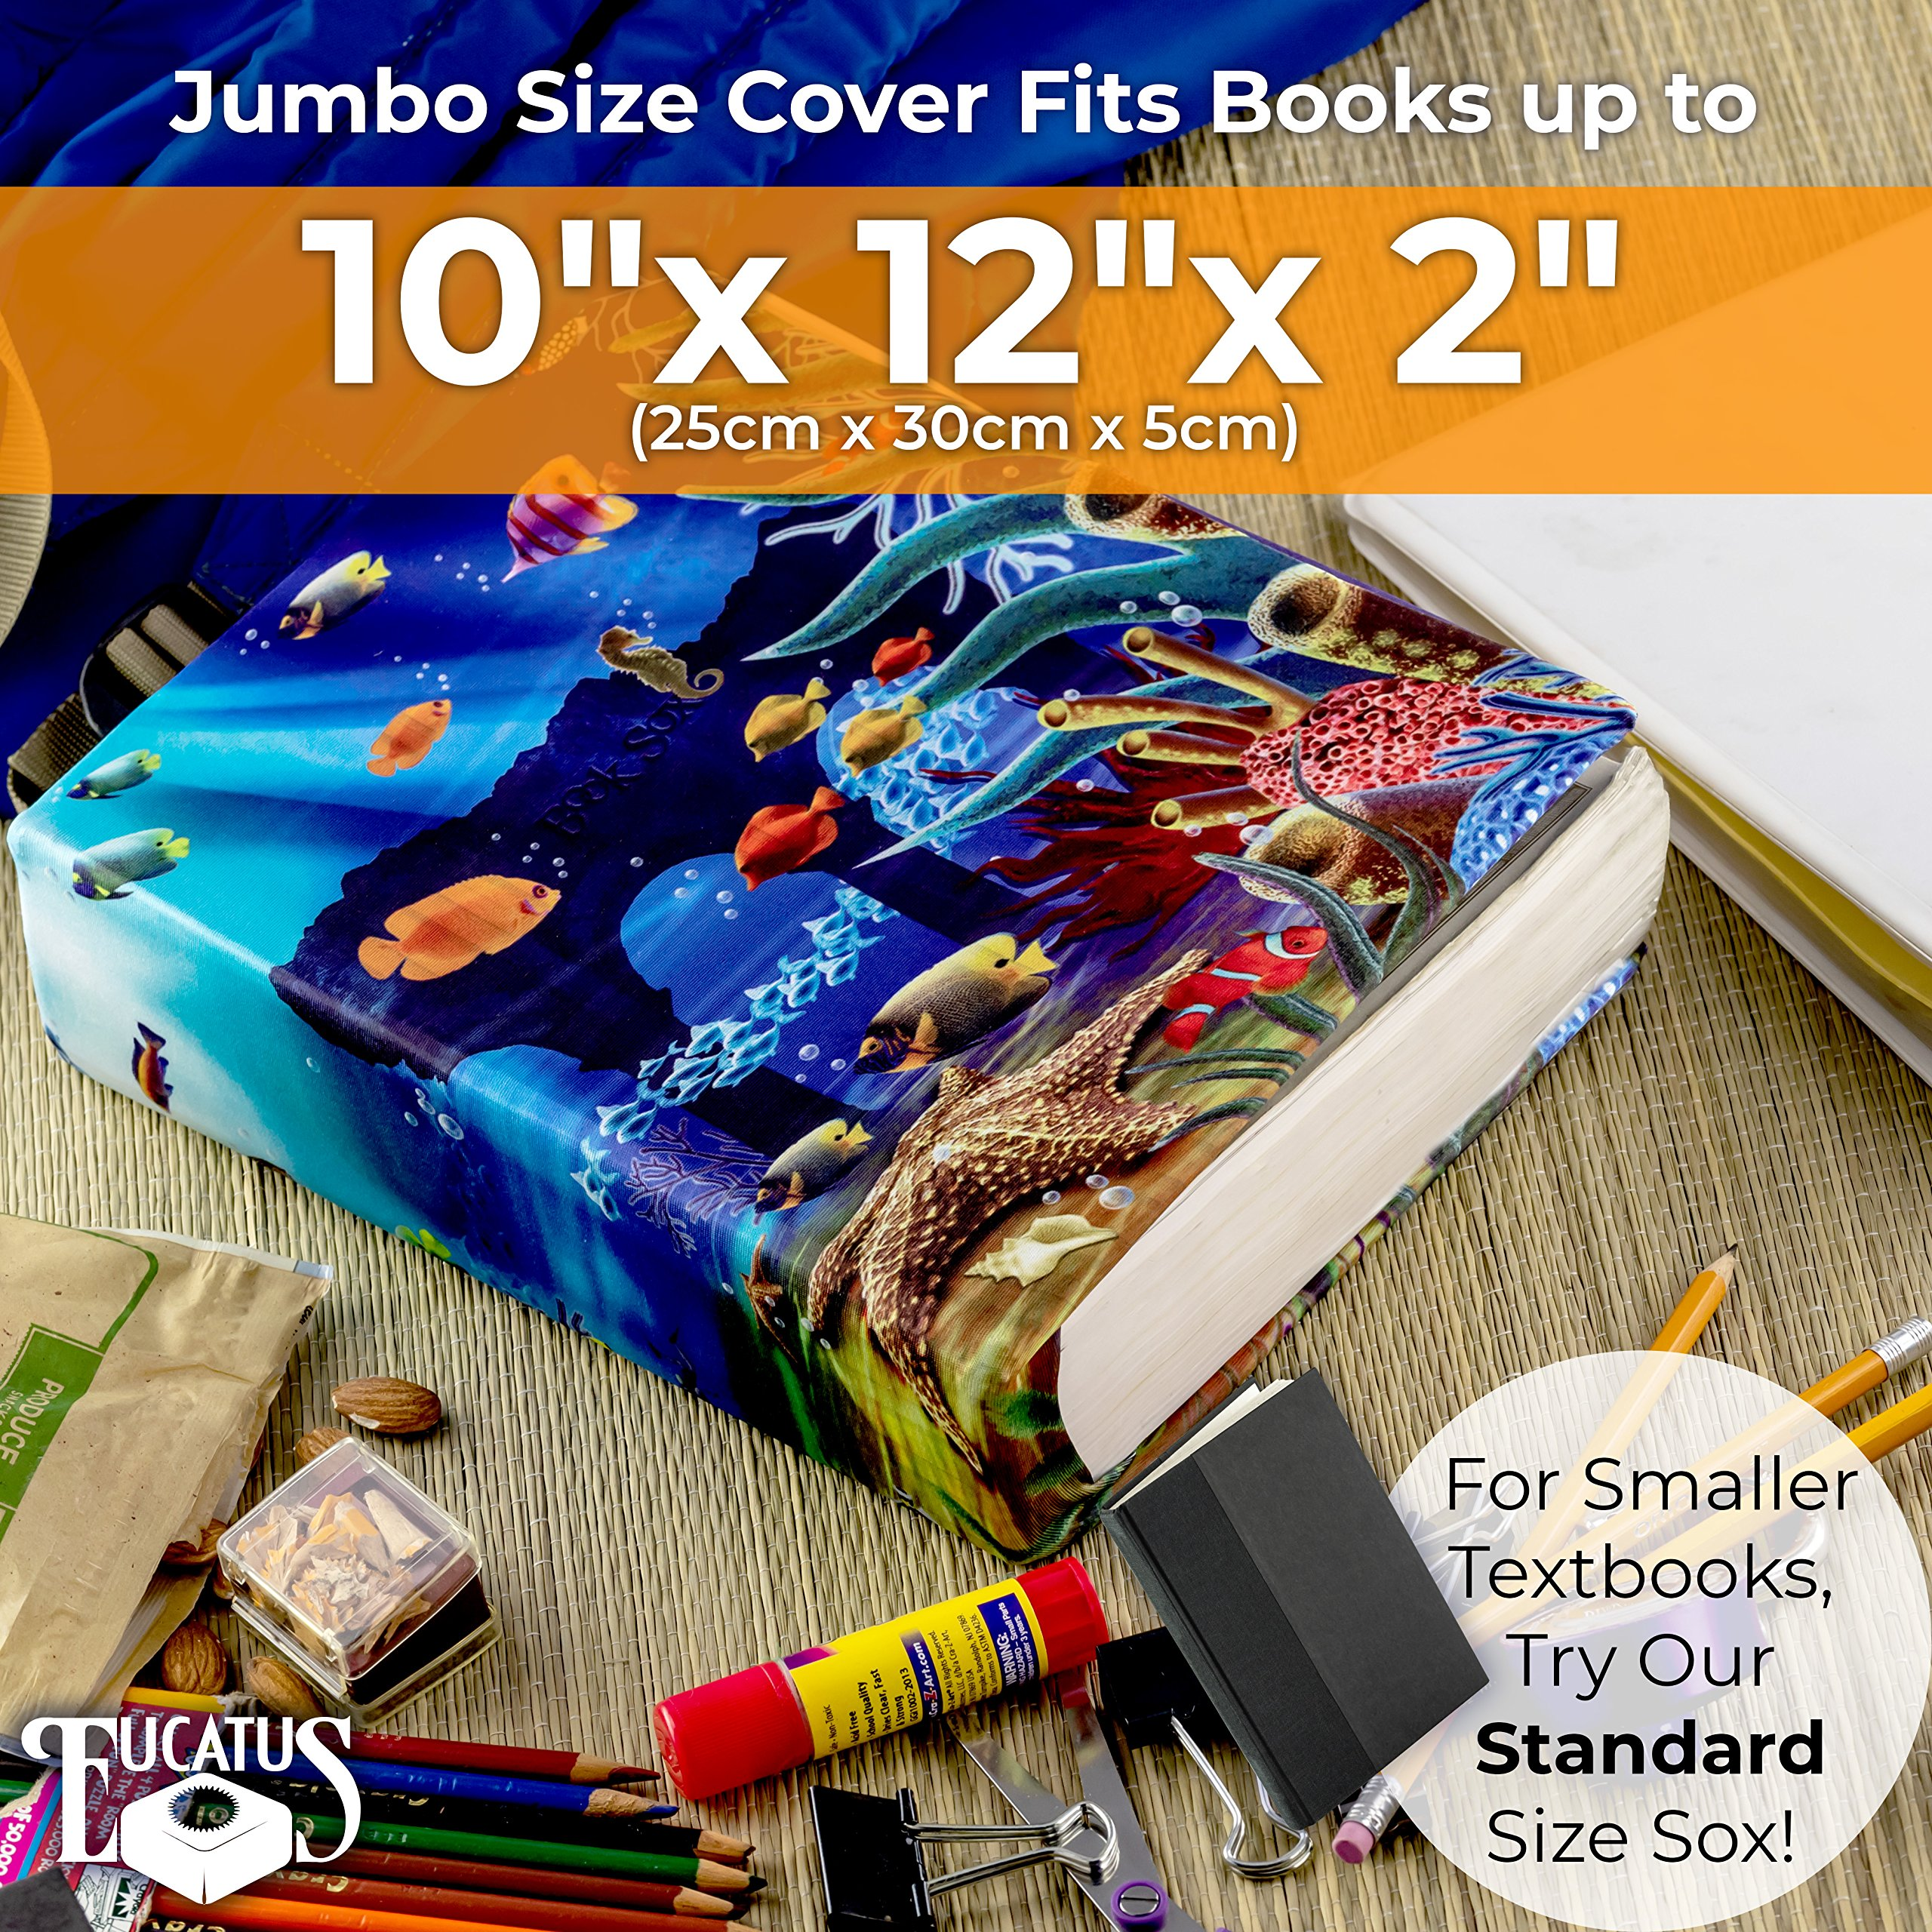 Jumbo, Stretchable Book Cover Geometric Shape 3 Pack. Fits Most Hardcover Textbooks Up to 9 x 11. Adhesive-Free, Nylon Fabric Protectors Are A Needed School Supply For Students Washable and Reusable by Eucatus (Image #7)